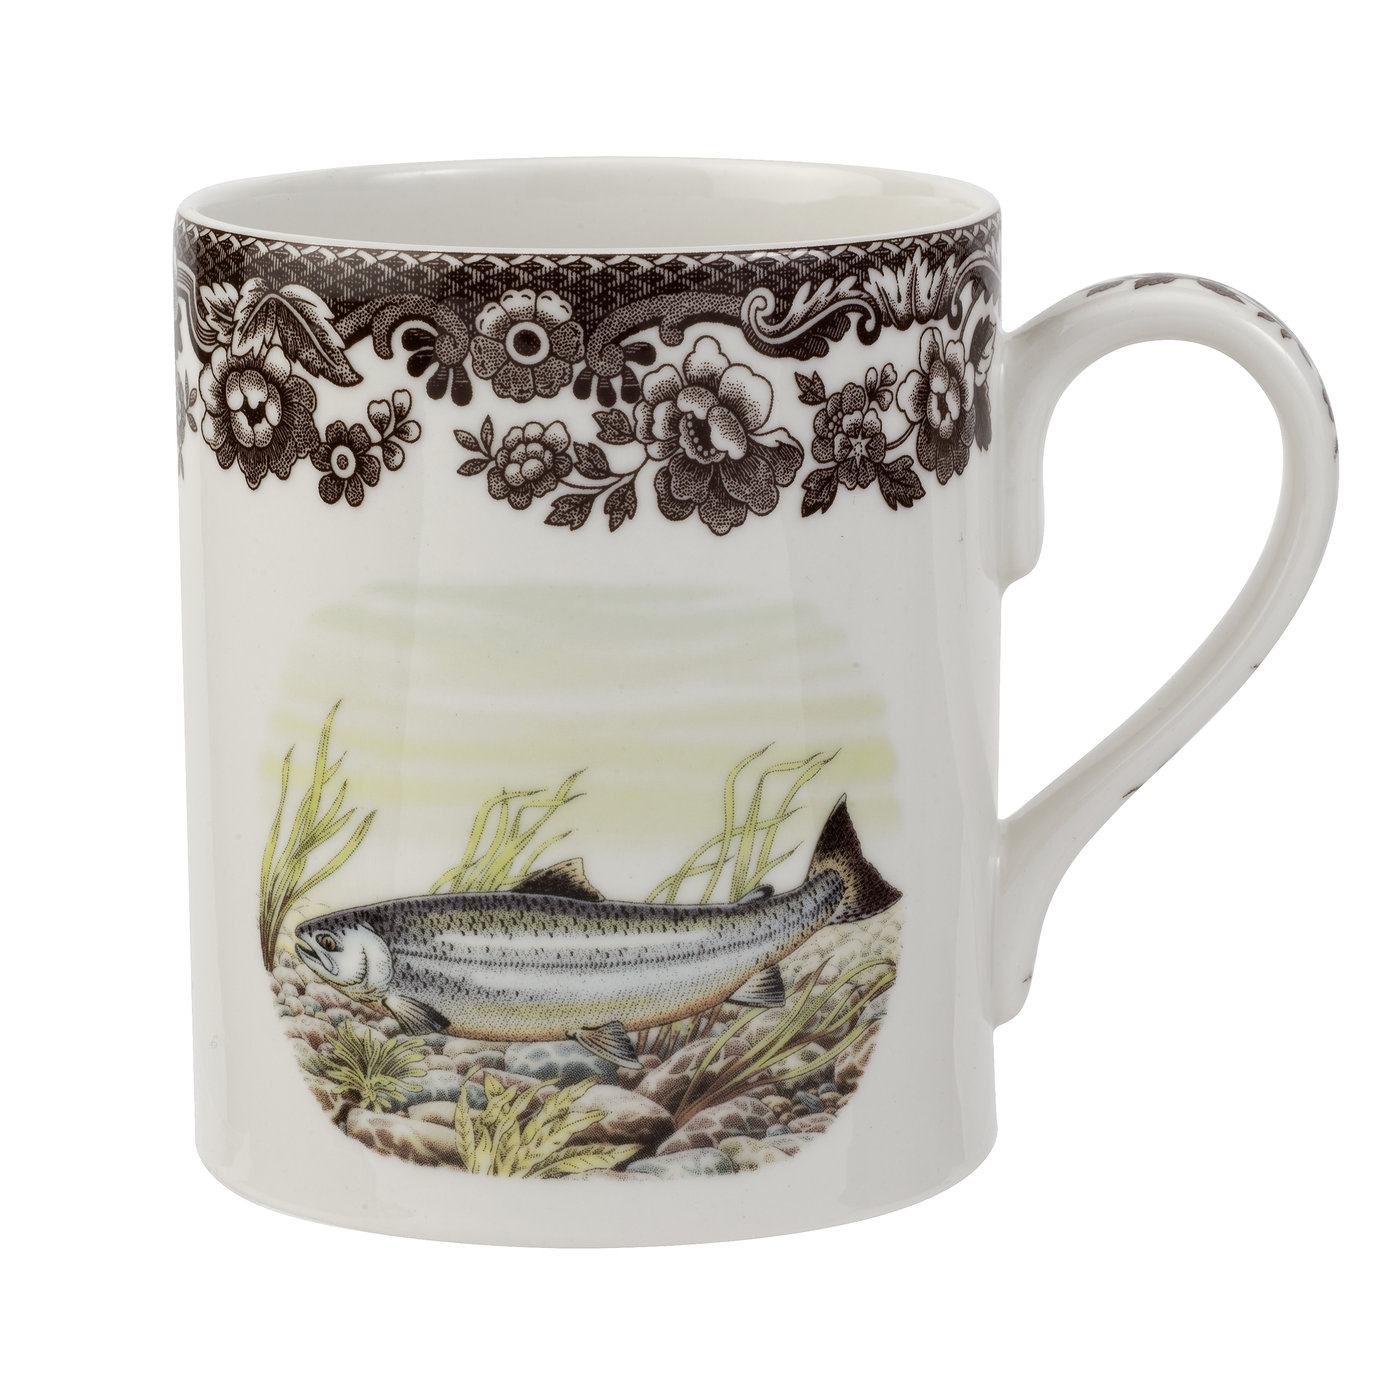 Spode Woodland 16oz Mug (King Salmon)  image number 0